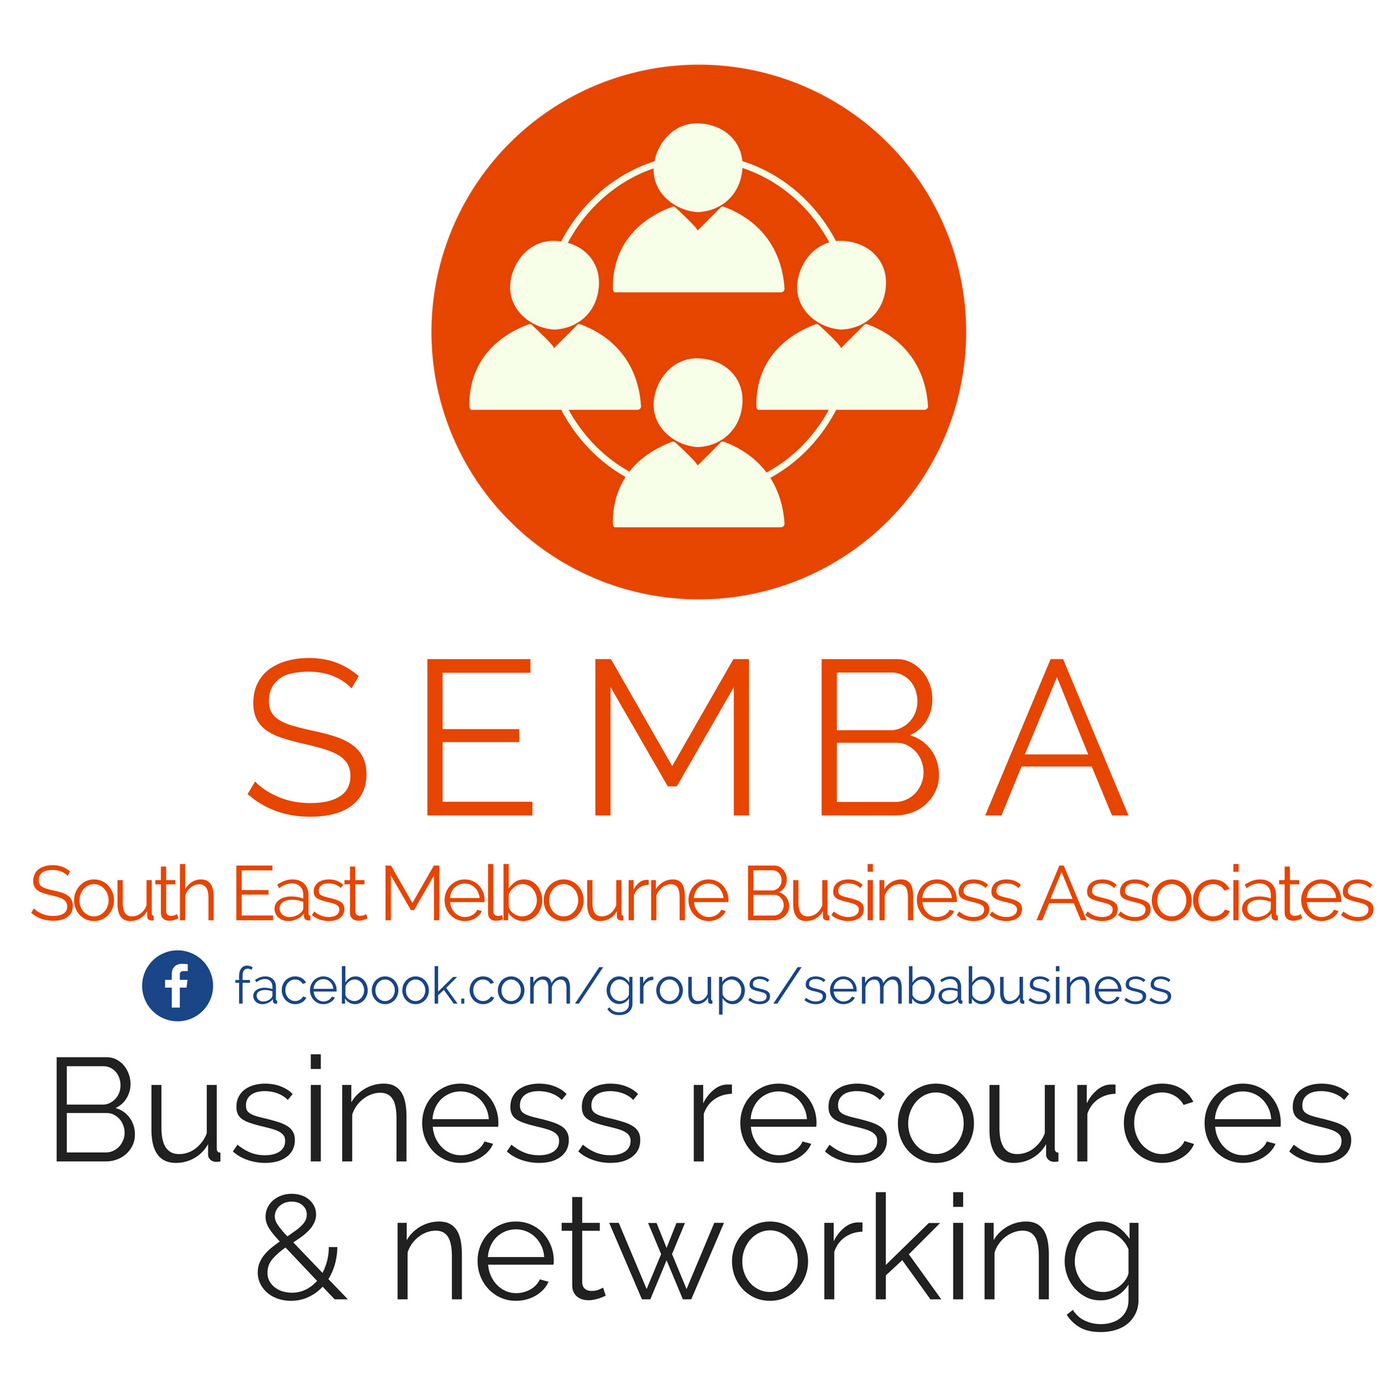 SEMBA Business Resources